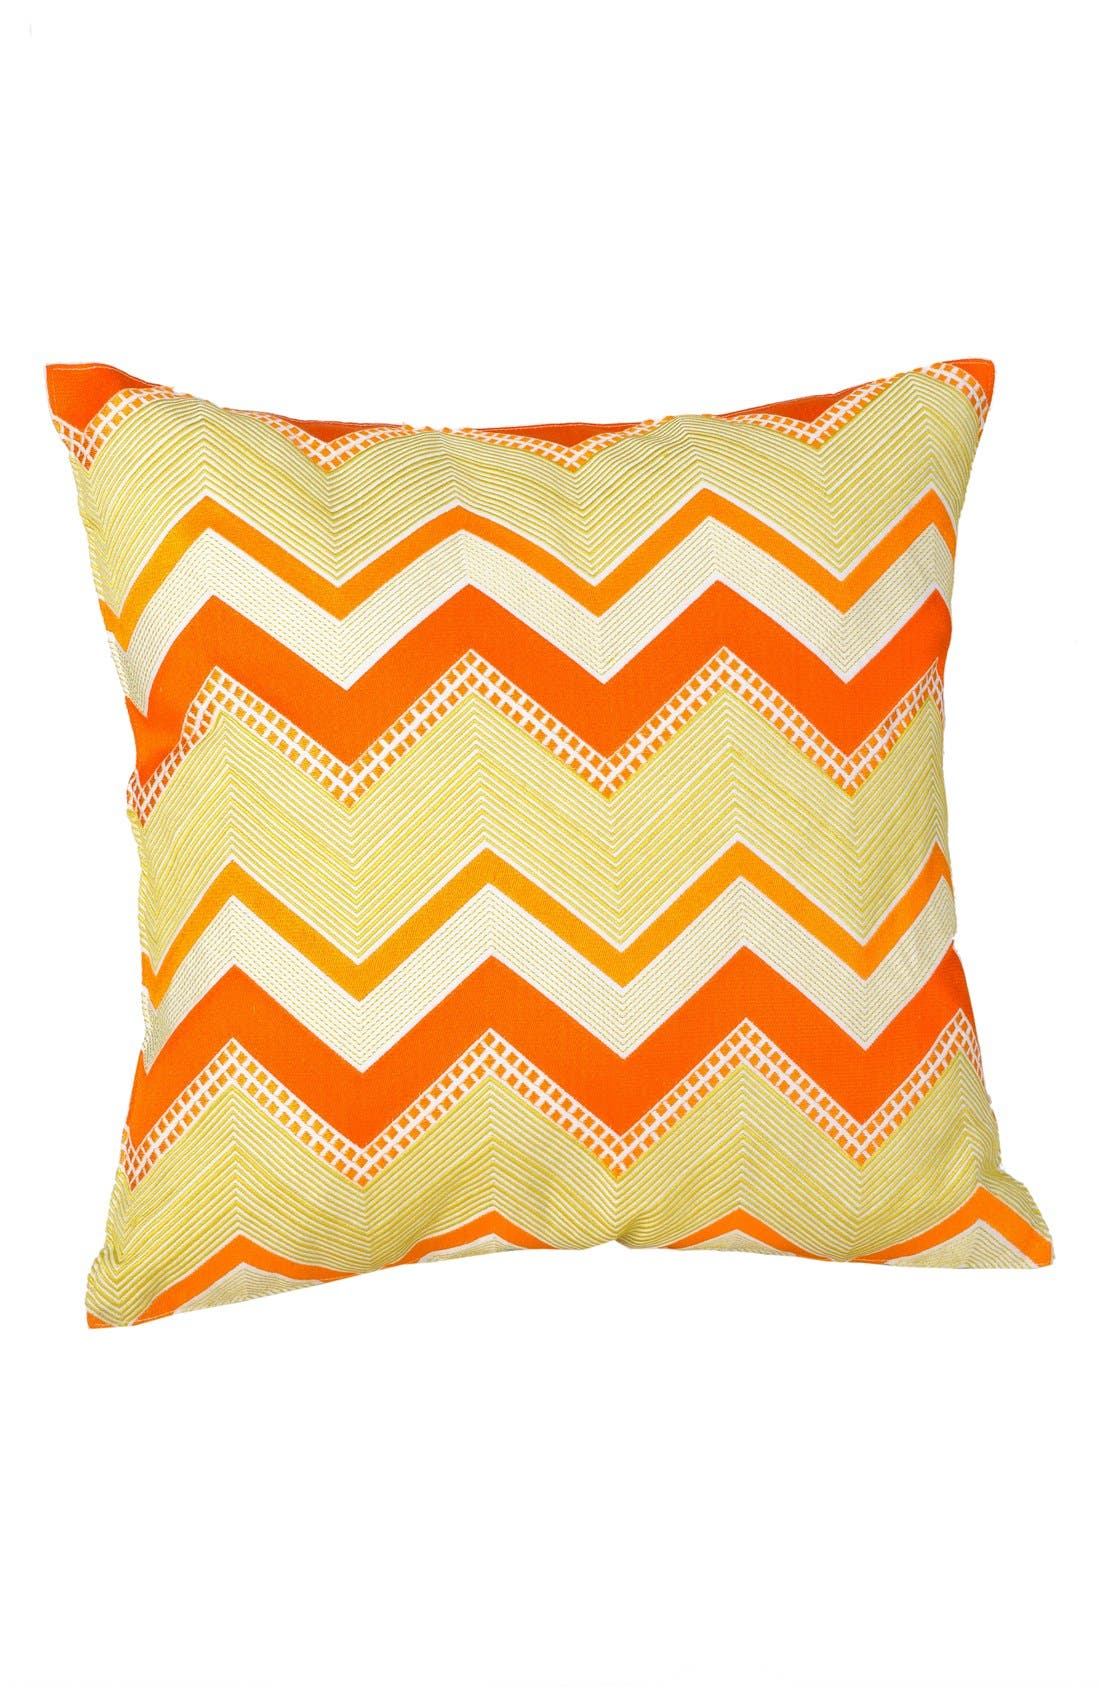 Alternate Image 1 Selected - Trina Turk 'Zebra Stripe - Citrus Chevron' Pillow